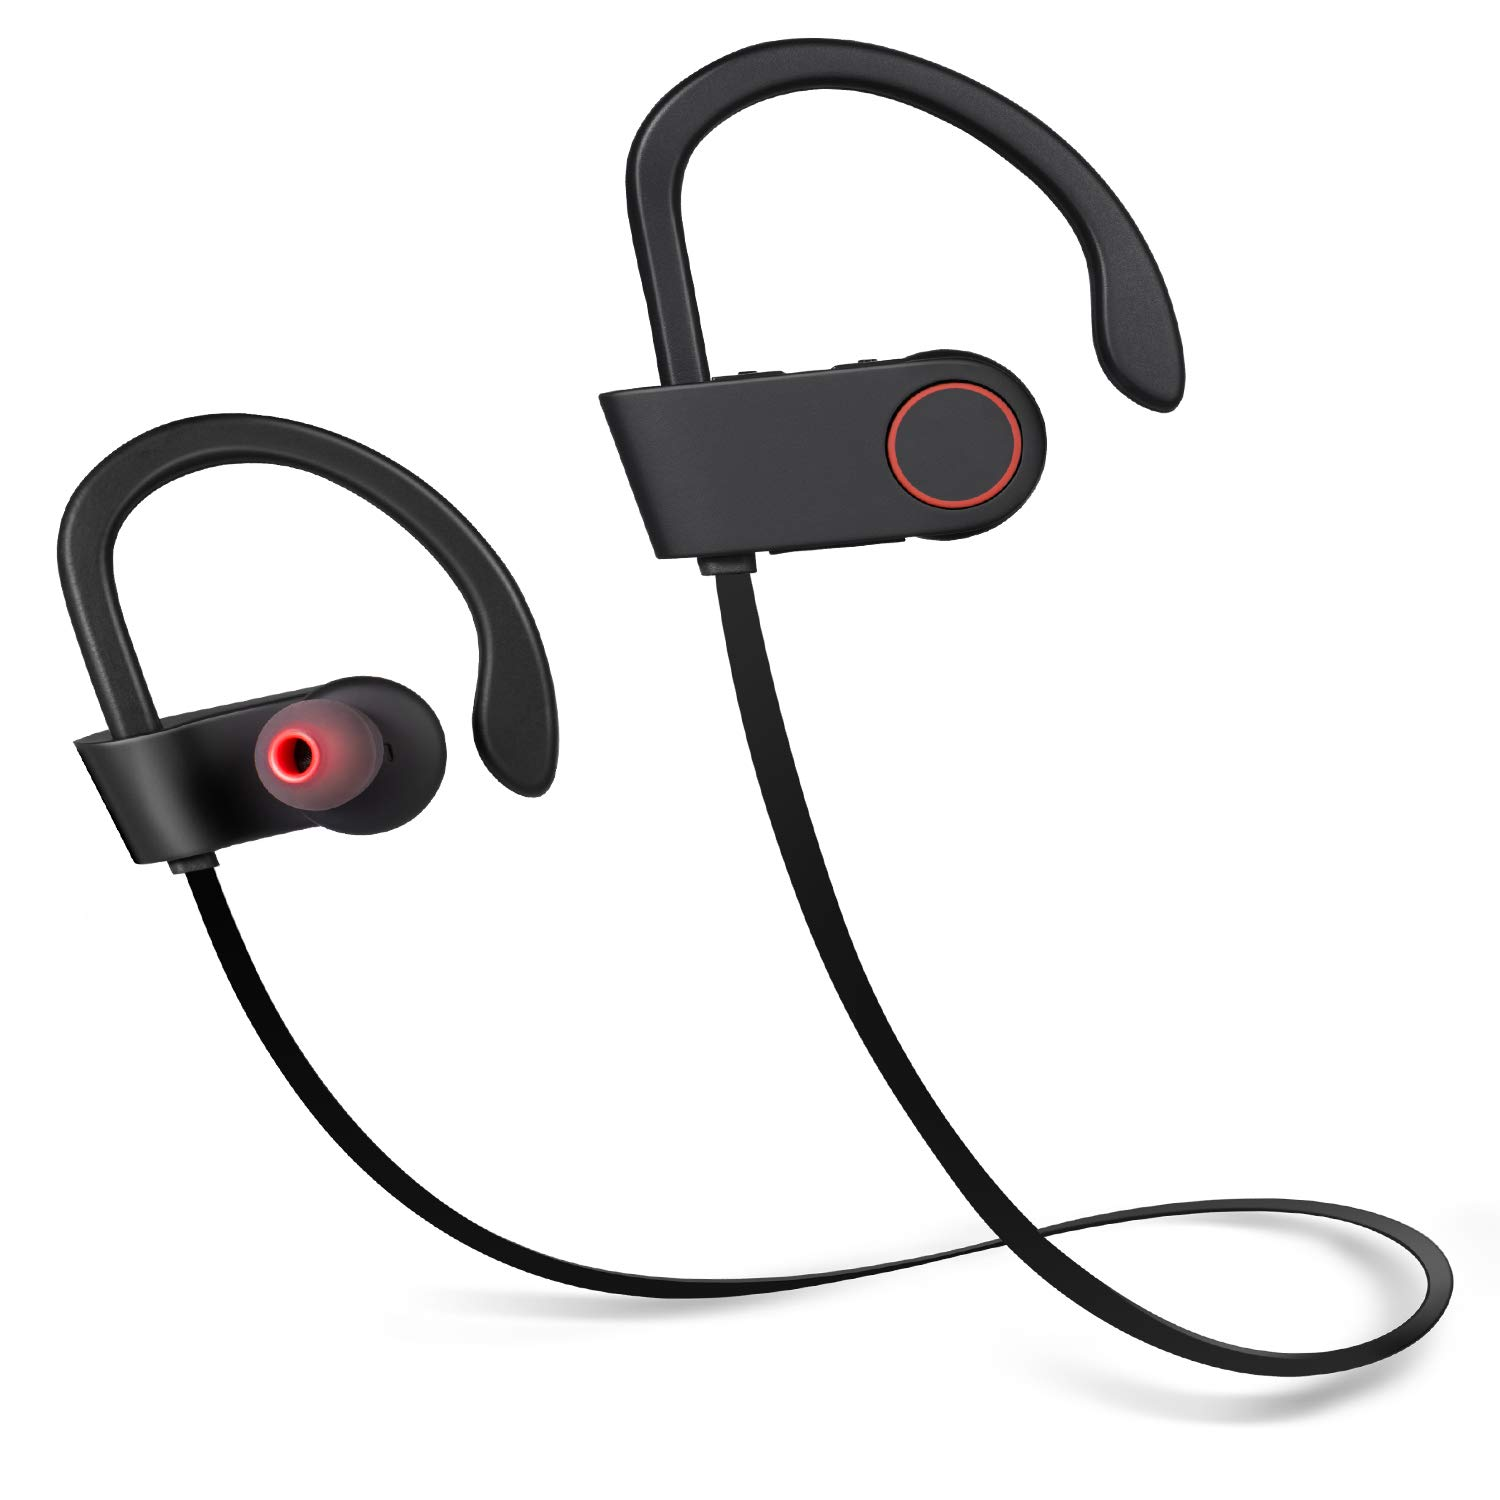 Bluetooth Headphones, Wireless in-Ear Earbuds Sports Headphones, Stereo Sound, Noise Cancelling, Sweatproof Waterproof Gym Running Earphones with Built-in Mic for PC Cell Phones TV